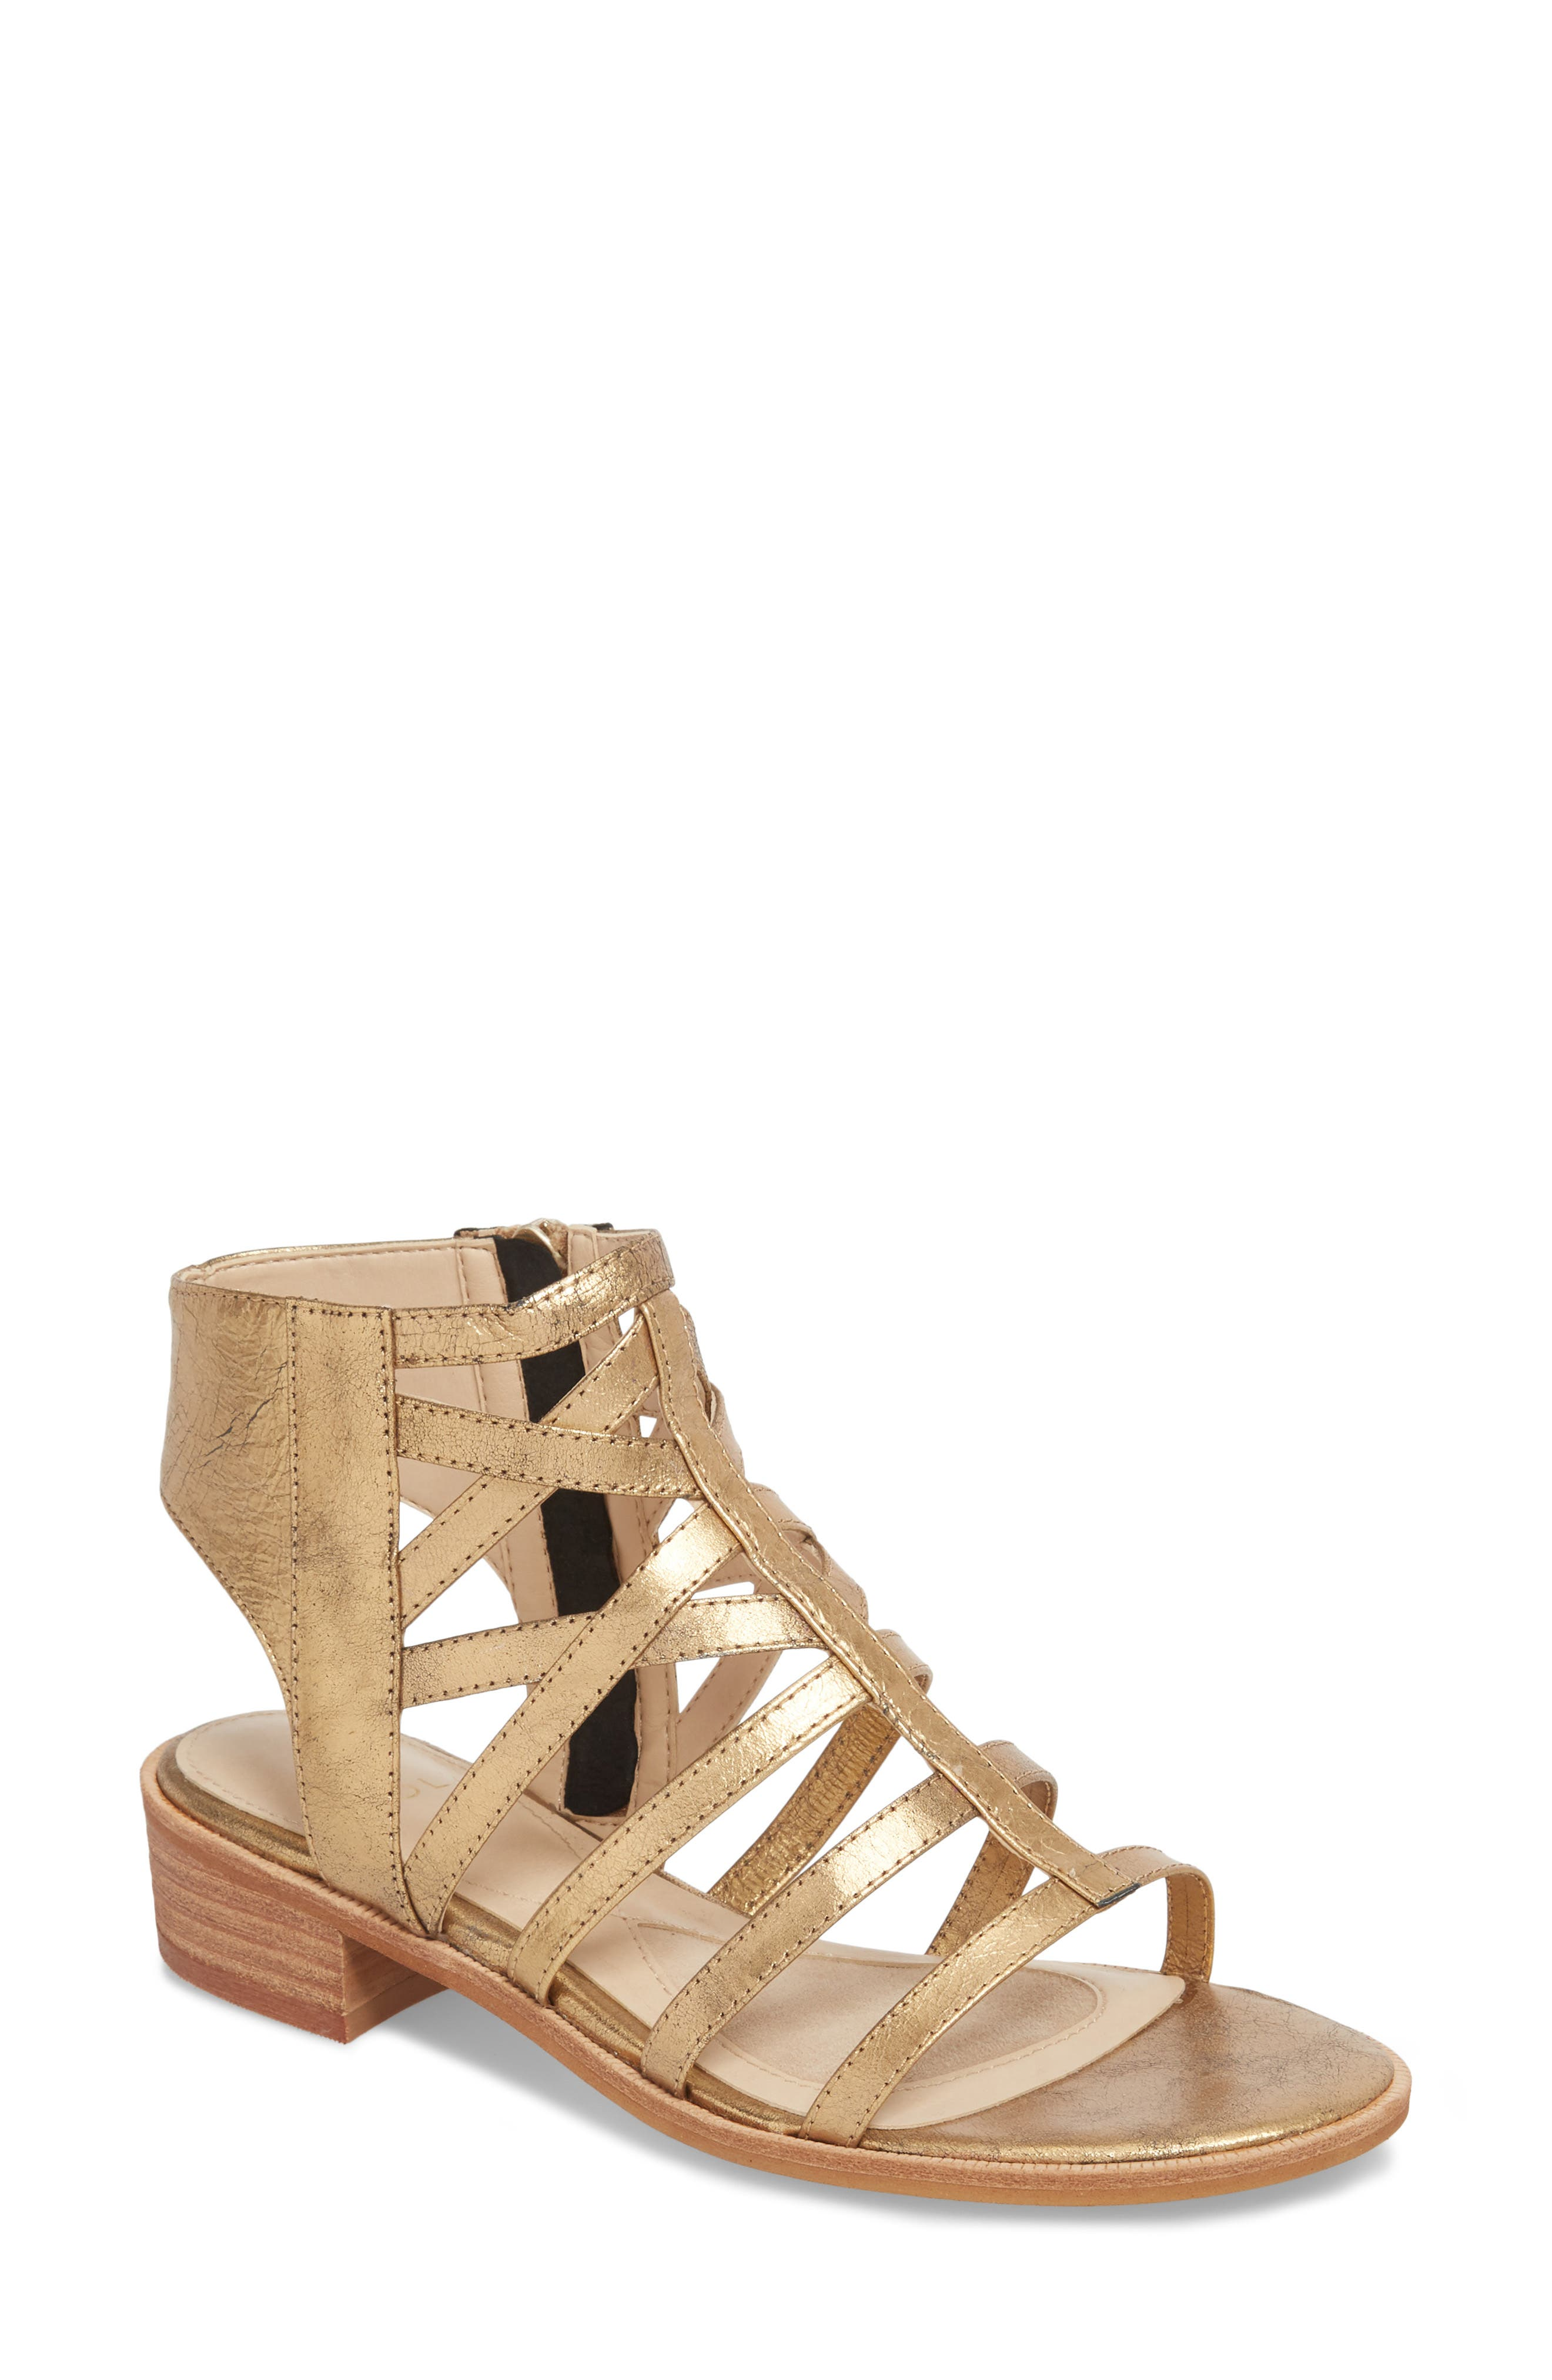 Genesis Cage Sandal,                         Main,                         color, Old Gold Leather